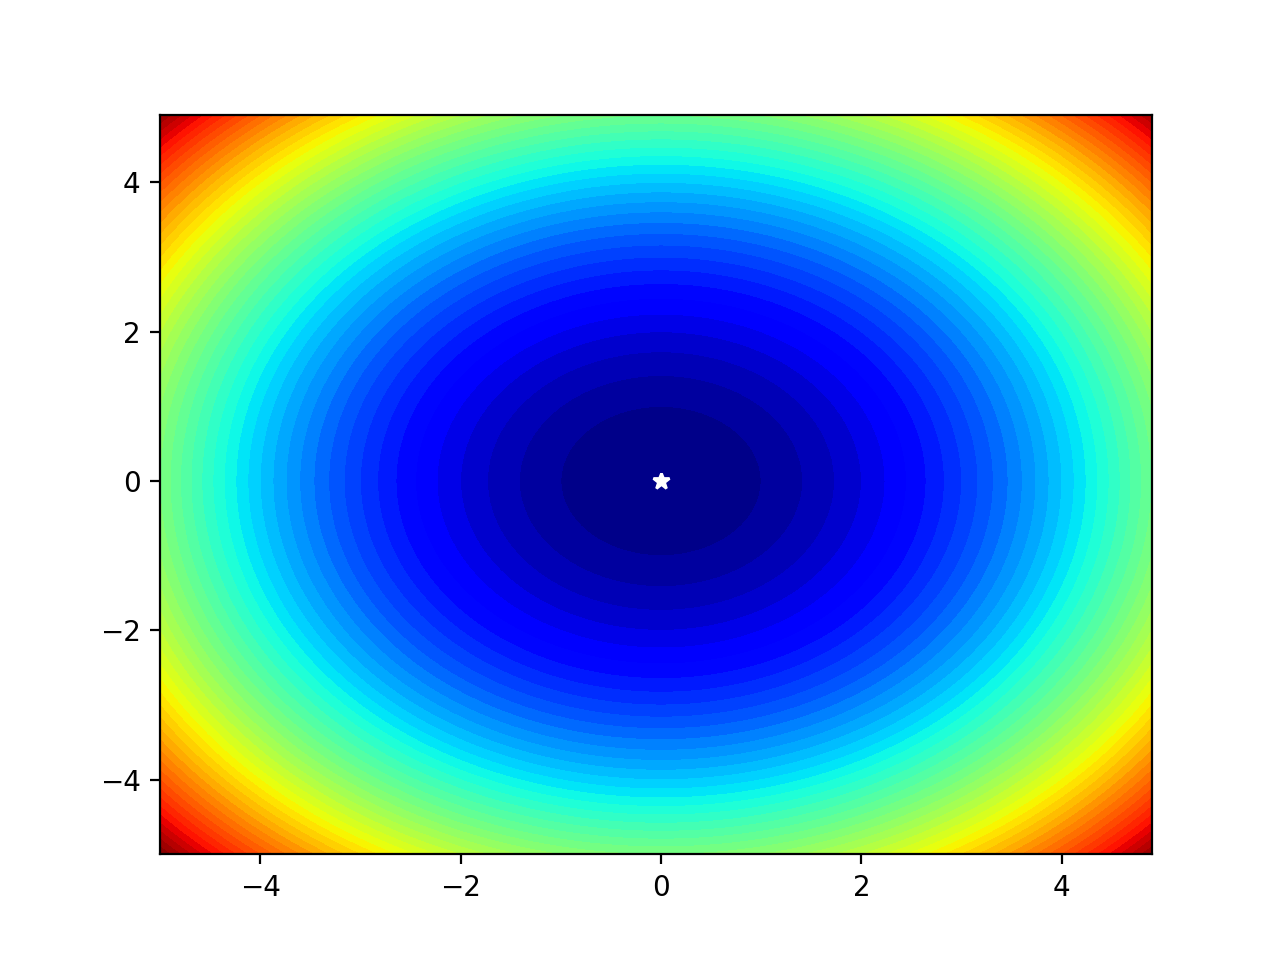 Filled Contour Plot of a Two-Dimensional Objective Function With Optima Marked by a White Star